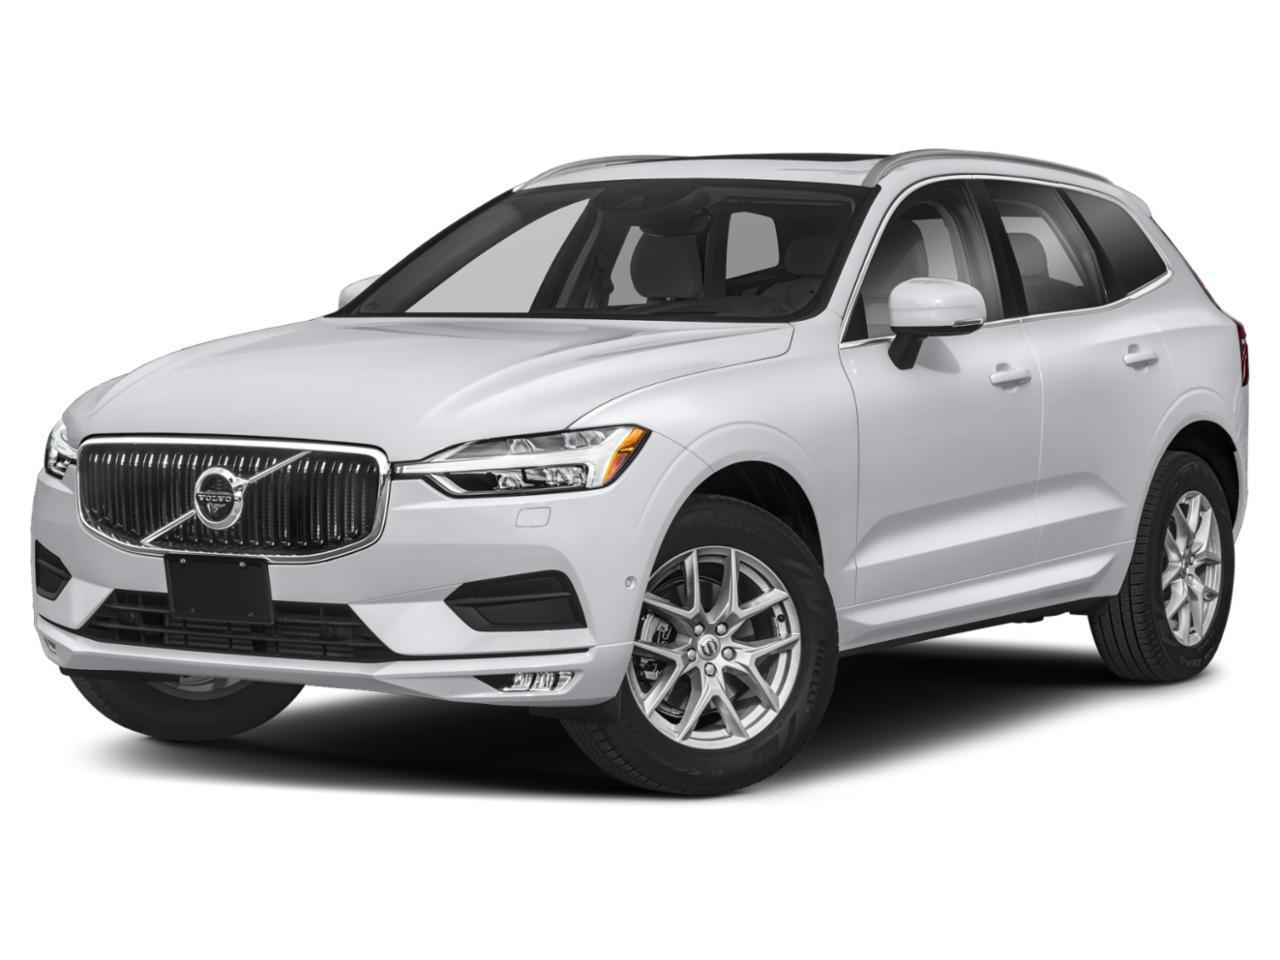 2019 Volvo XC60 Vehicle Photo in Grapevine, TX 76051